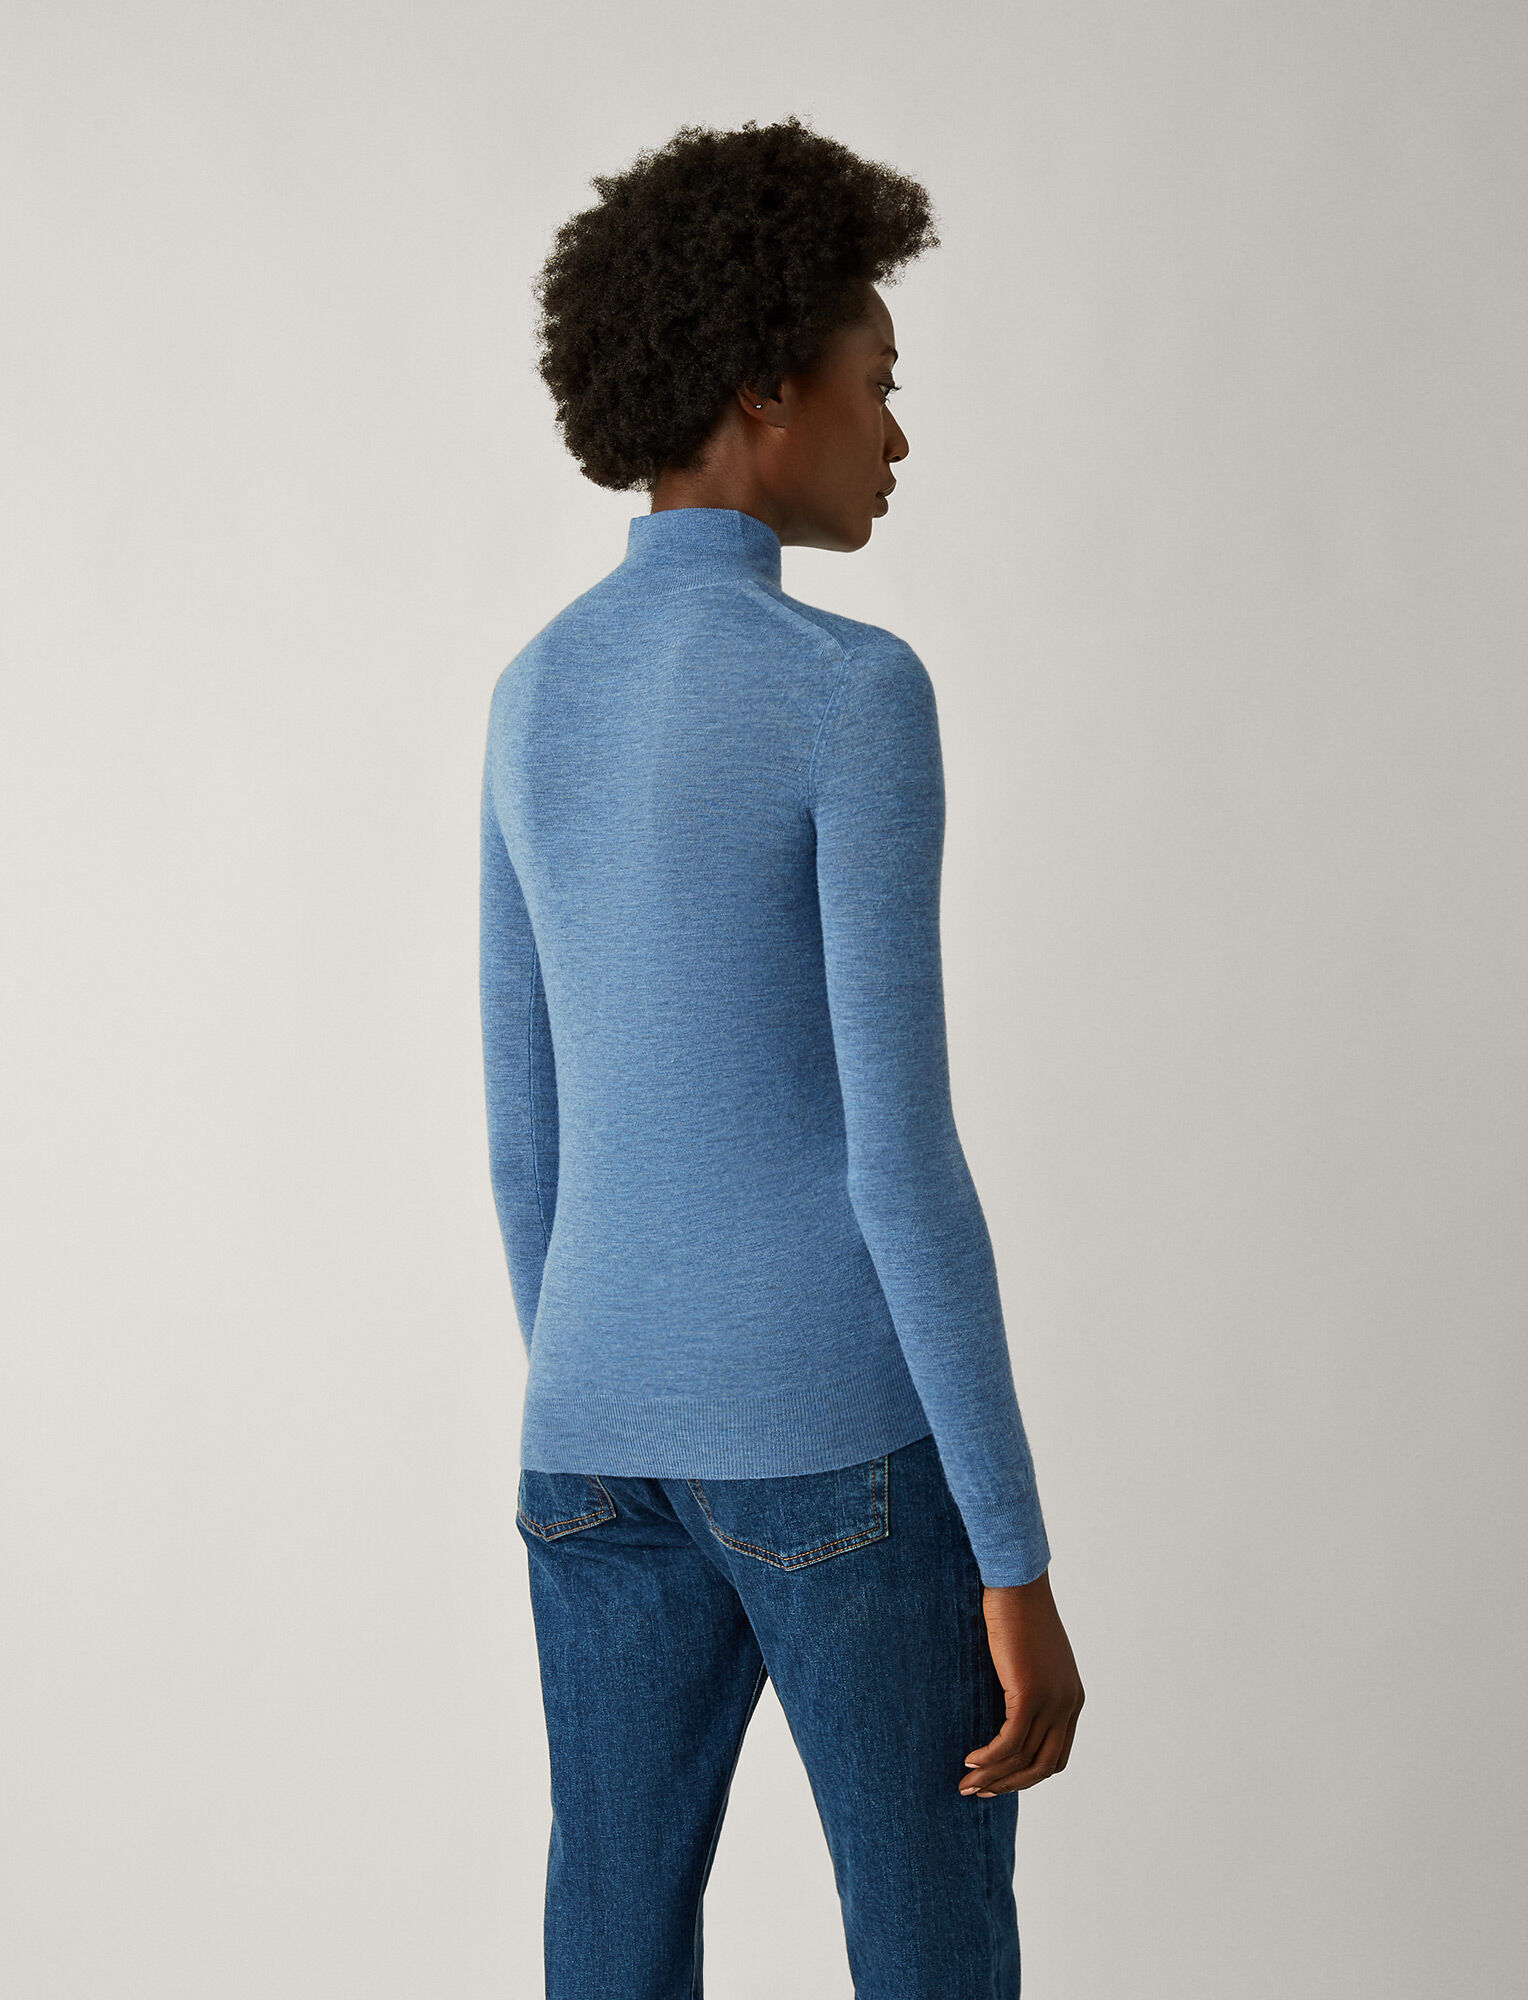 Joseph, High Neck Cashair Knit, in ENCRE